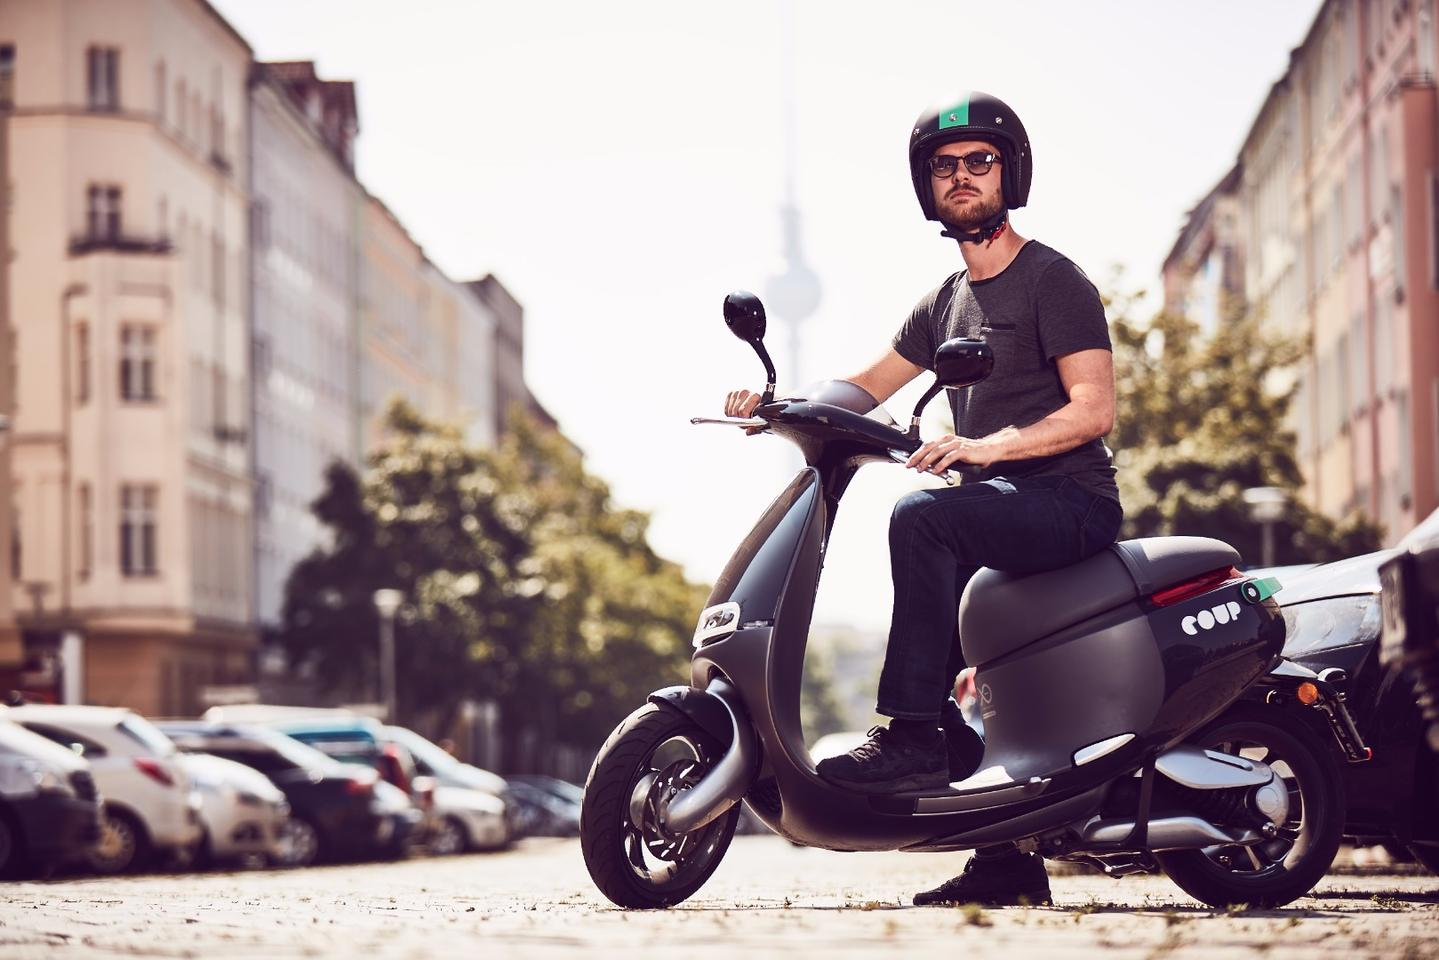 With Coup's electric scooter rental plan, moving around Paris' congested center becomes simple and fairly affordable